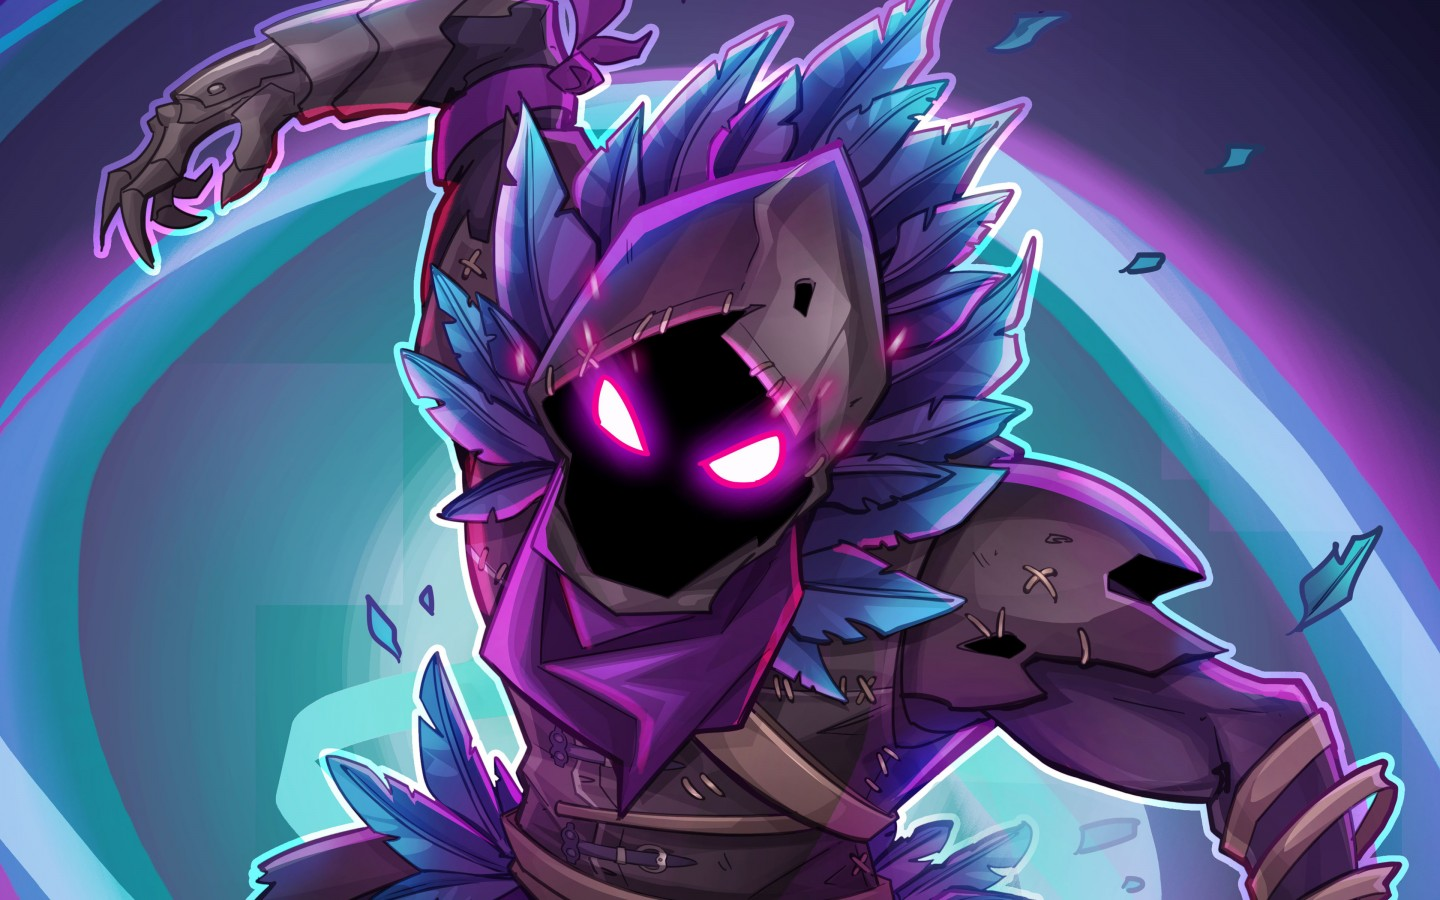 Hd Game Wallpapers For Iphone 6 Fortnite Rraven 4k Wallpapers Hd Wallpapers Id 24192